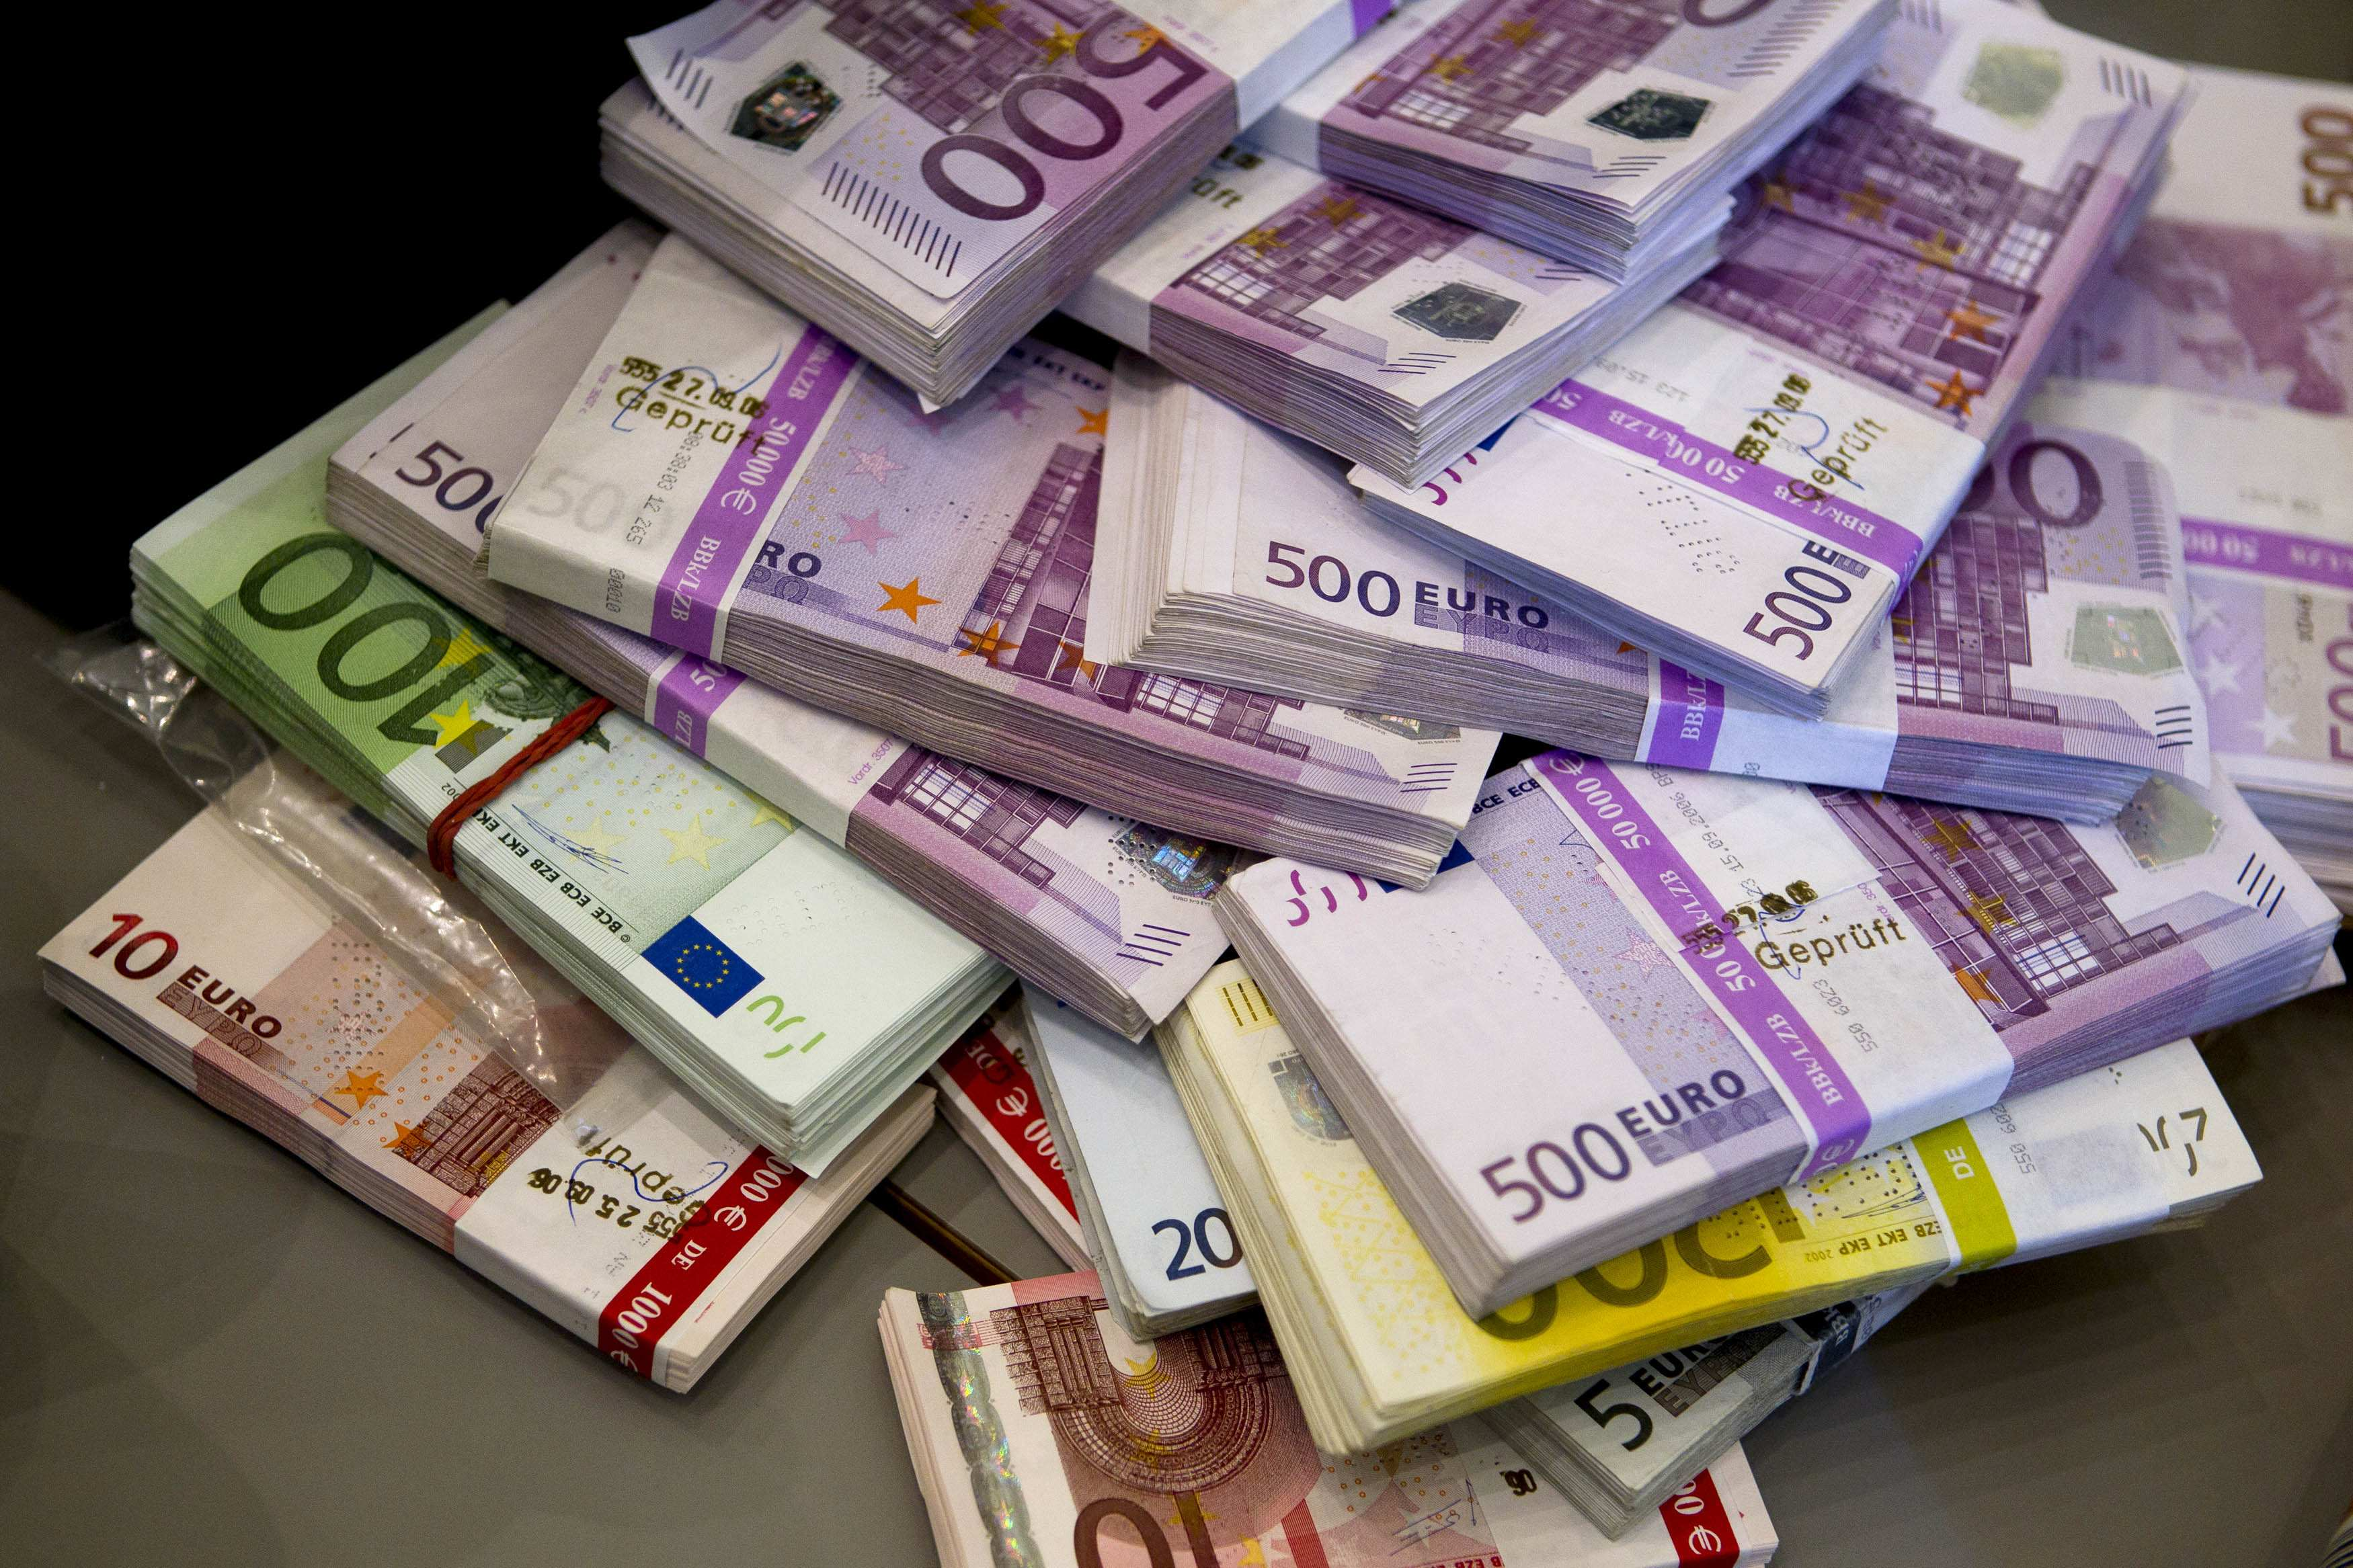 Euro Working Group approves release of 2.8-bln-euro loan tranche for Greece